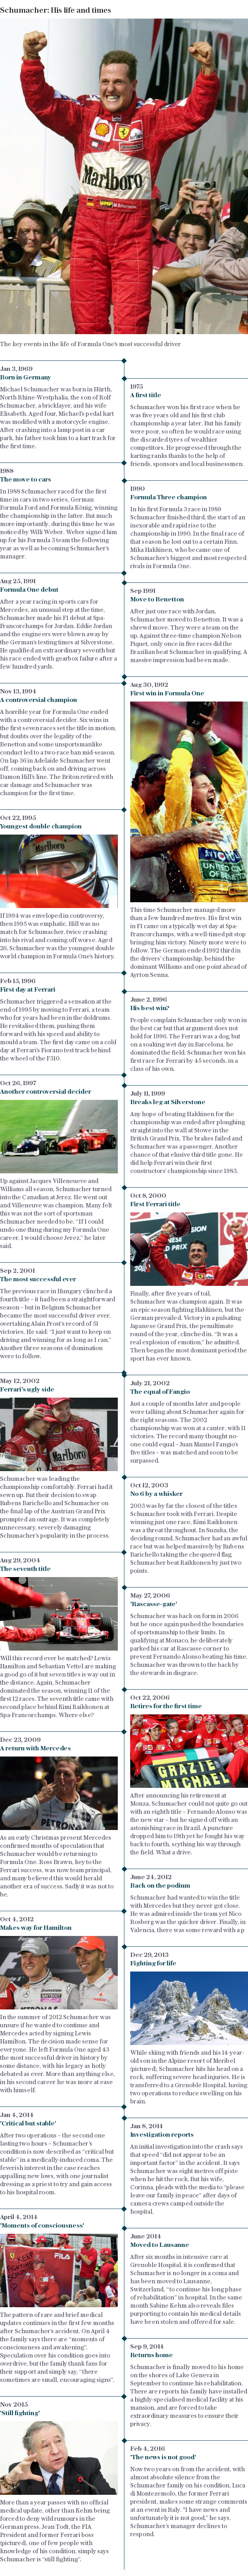 Michael Schumacher - life and times